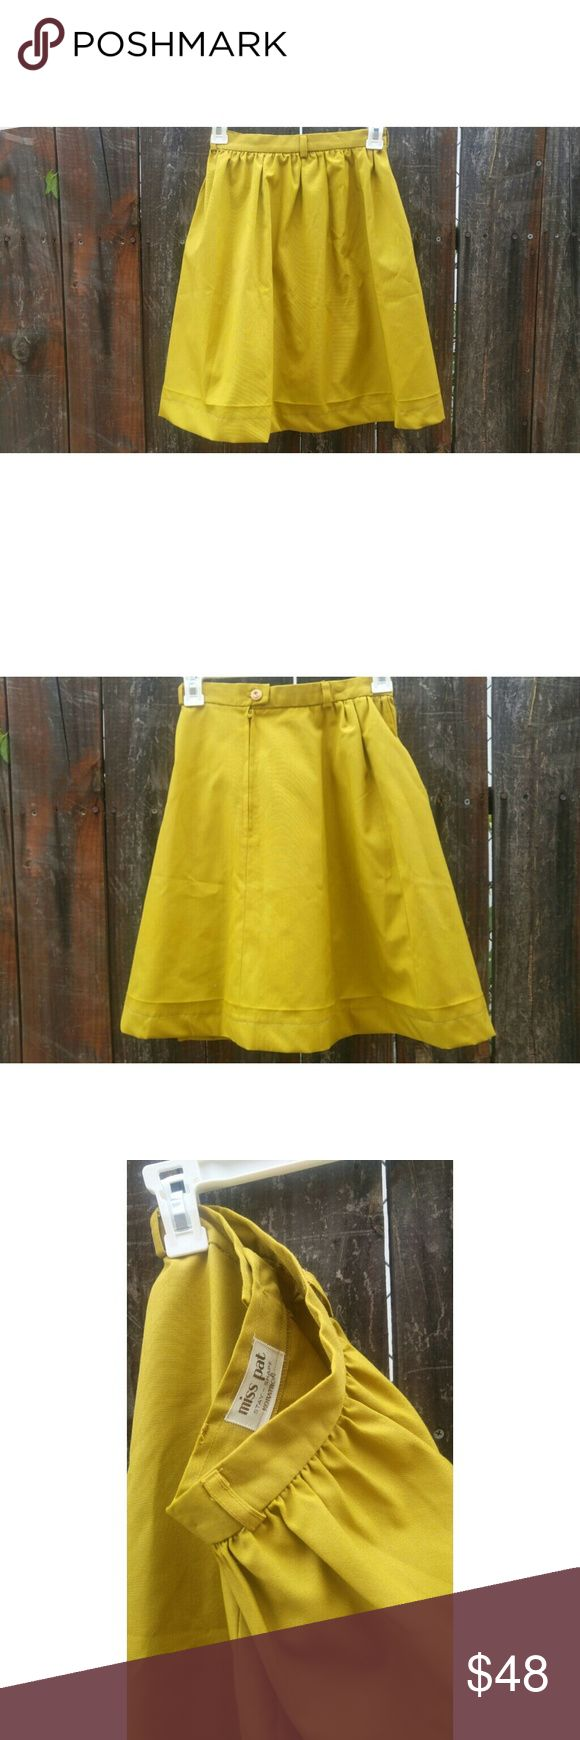 "True Vintage 50s Skirt Miss Pat of California 50s mustard yellow A-line skirt in amazing condition. It looks like it has been rehemmed at some point. I have added a wooden button because the old button was falling apart.  No size label, but it measures at 24"" waist, and 21"" from waist to hem. Hits just above the knee (I'm 5'4). I can't fit it anymore unfortunately, but I would say it is roughly a size 2-3. Vintage Skirts A-Line or Full"